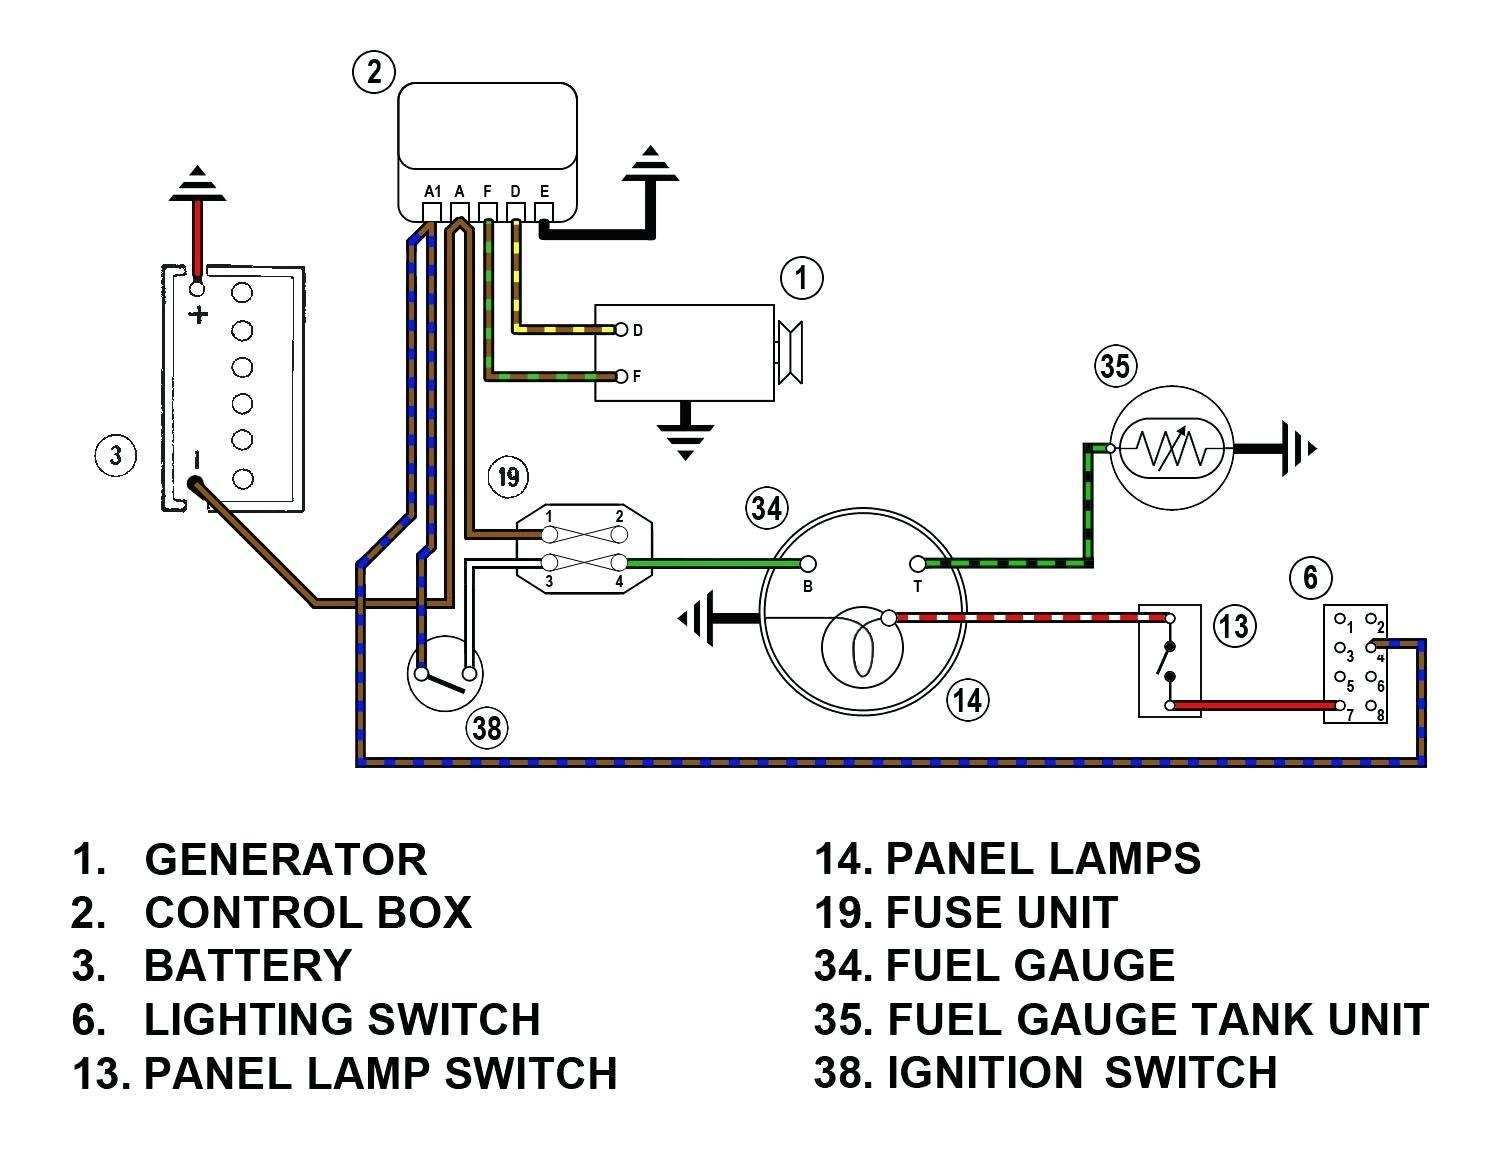 hight resolution of electrical panel wiring diagram software circuit diagram builder gorgeous electrical panel wiring diagram software fuel